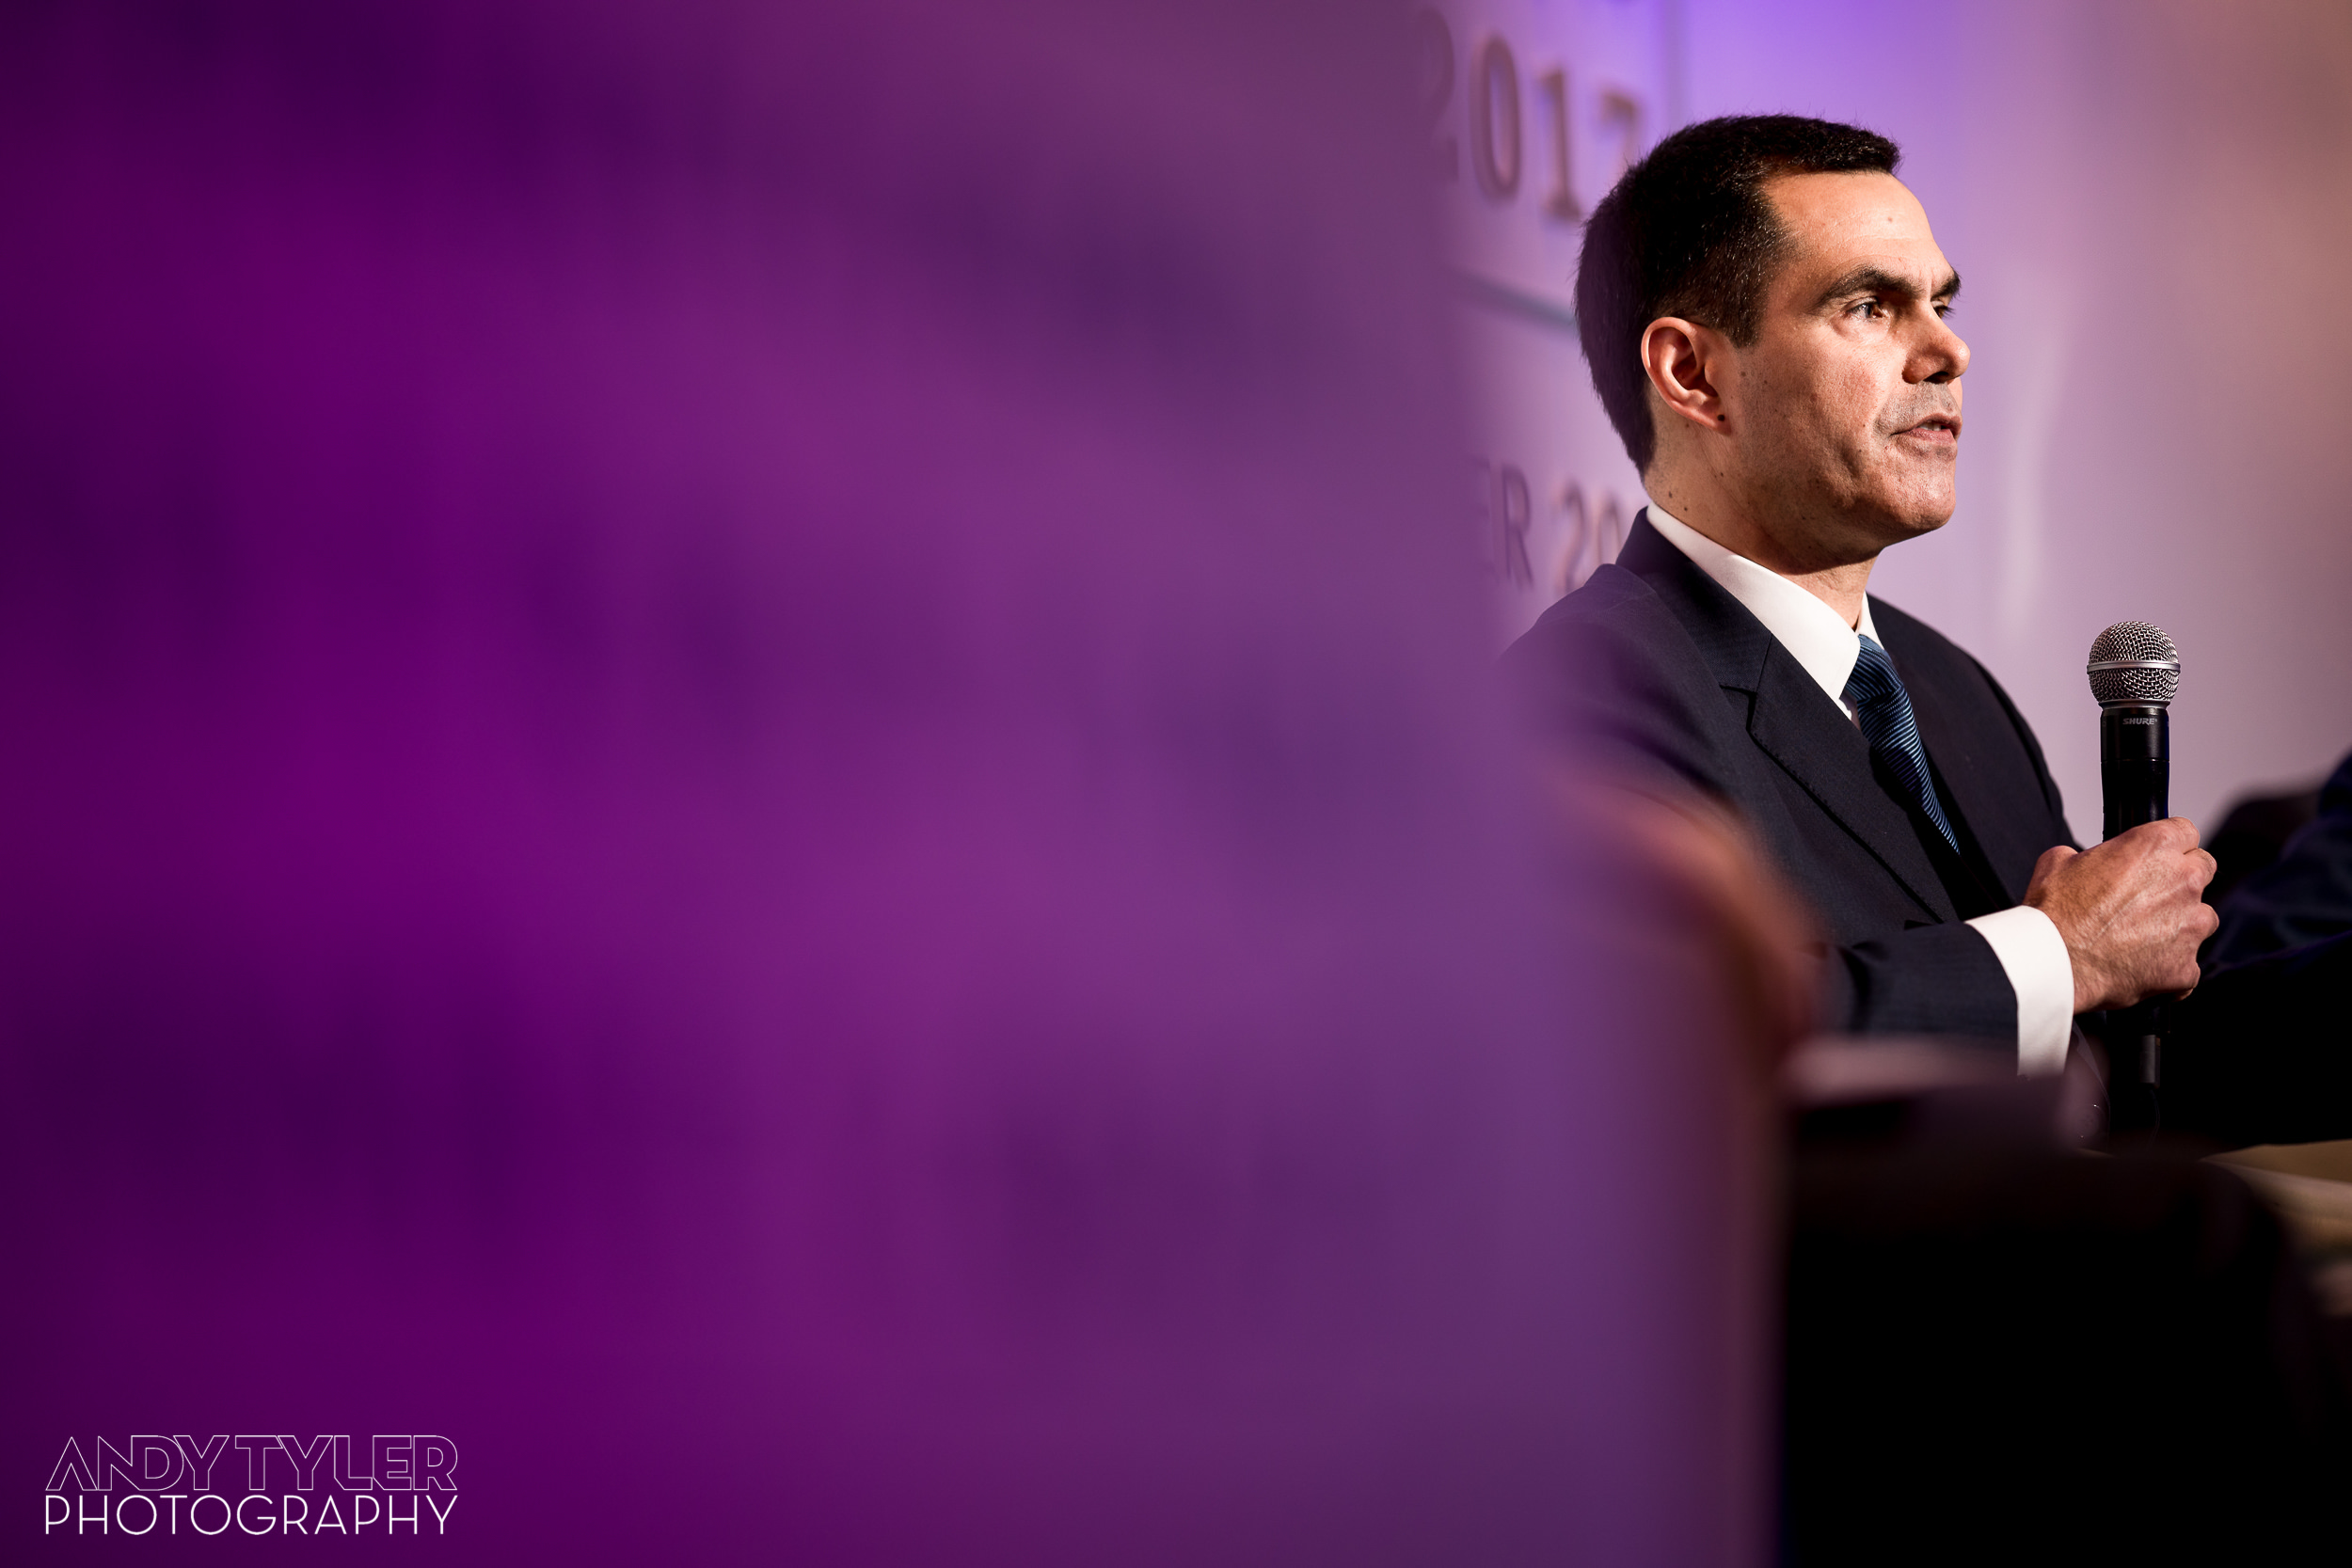 Andy_Tyler_Photography_Business_Conference_008_Andy_Tyler_Photography_138_5DA_0635.jpg